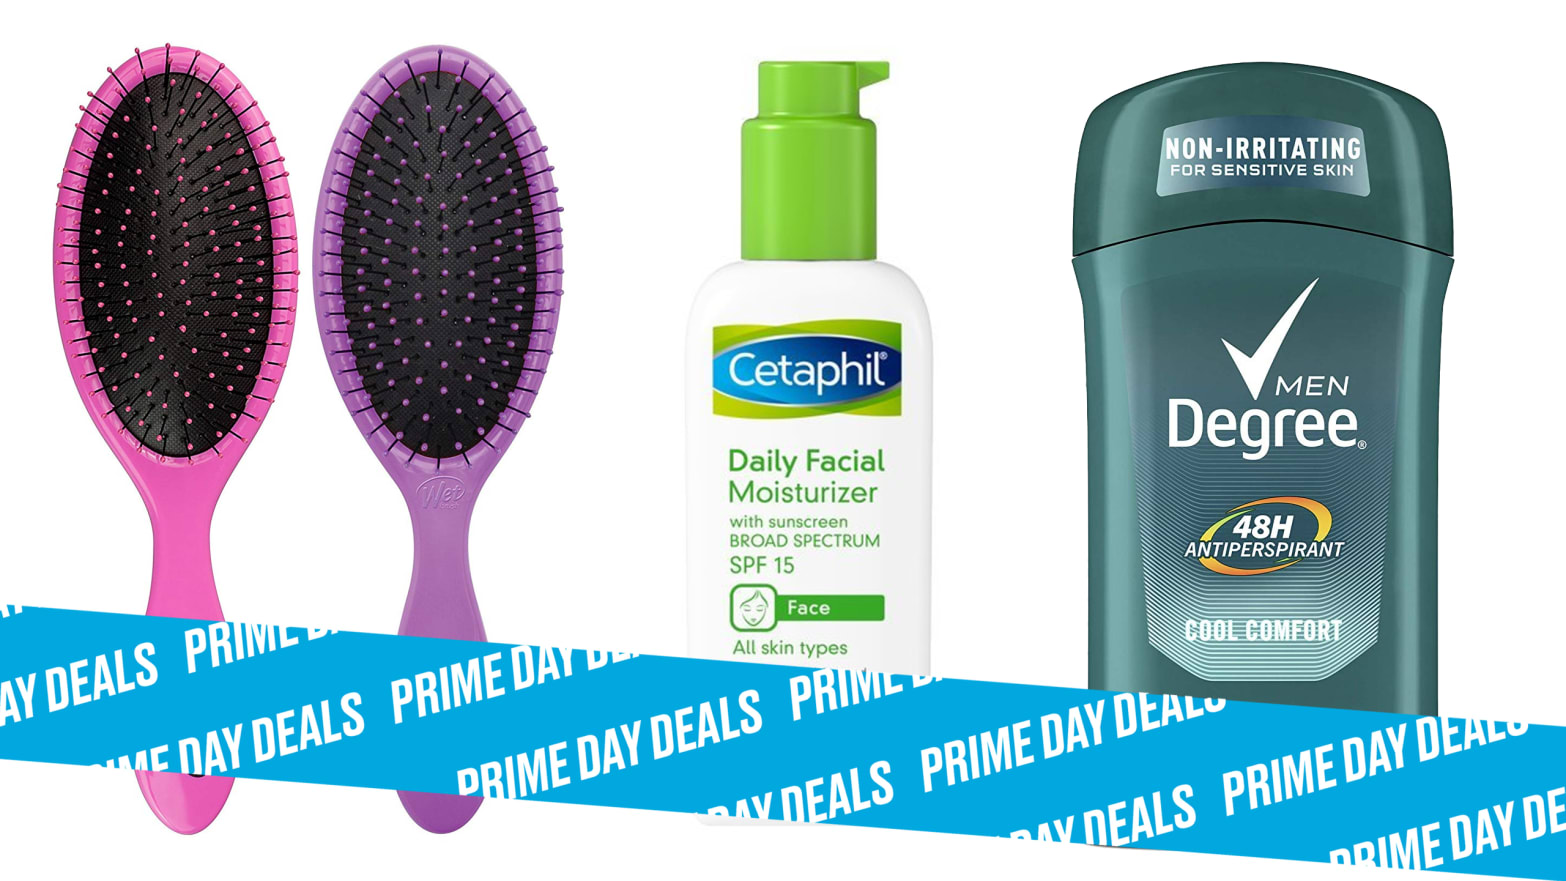 Shop Personal Care and Makeup for Up to 30% Off on Prime Day